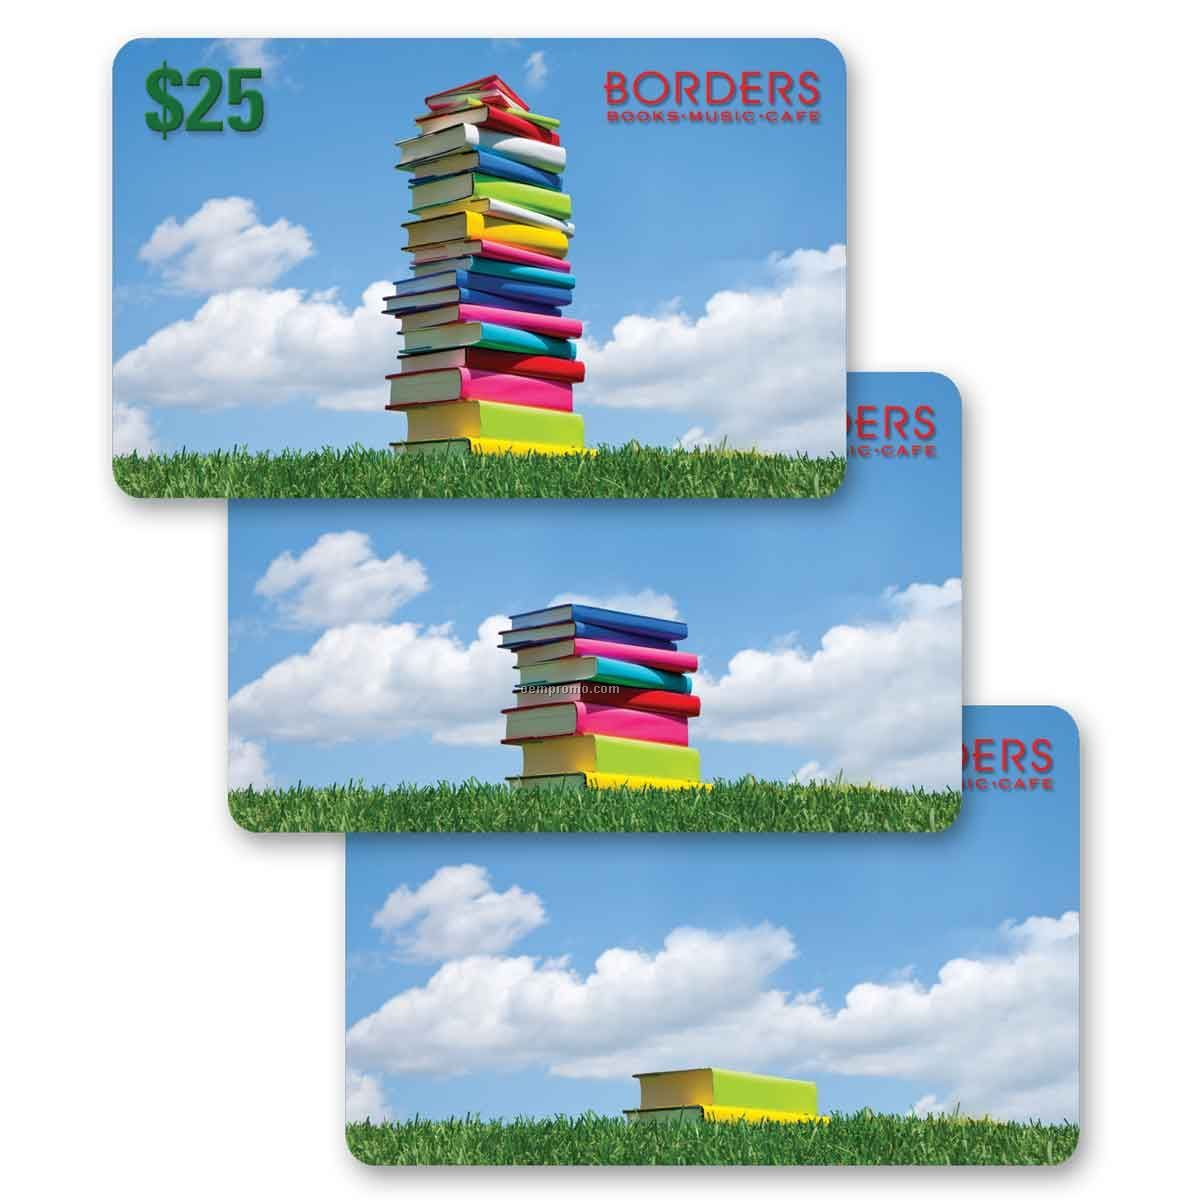 3d Lenticular Gift Card W/Animated Stack Of Books Images (Blanks)